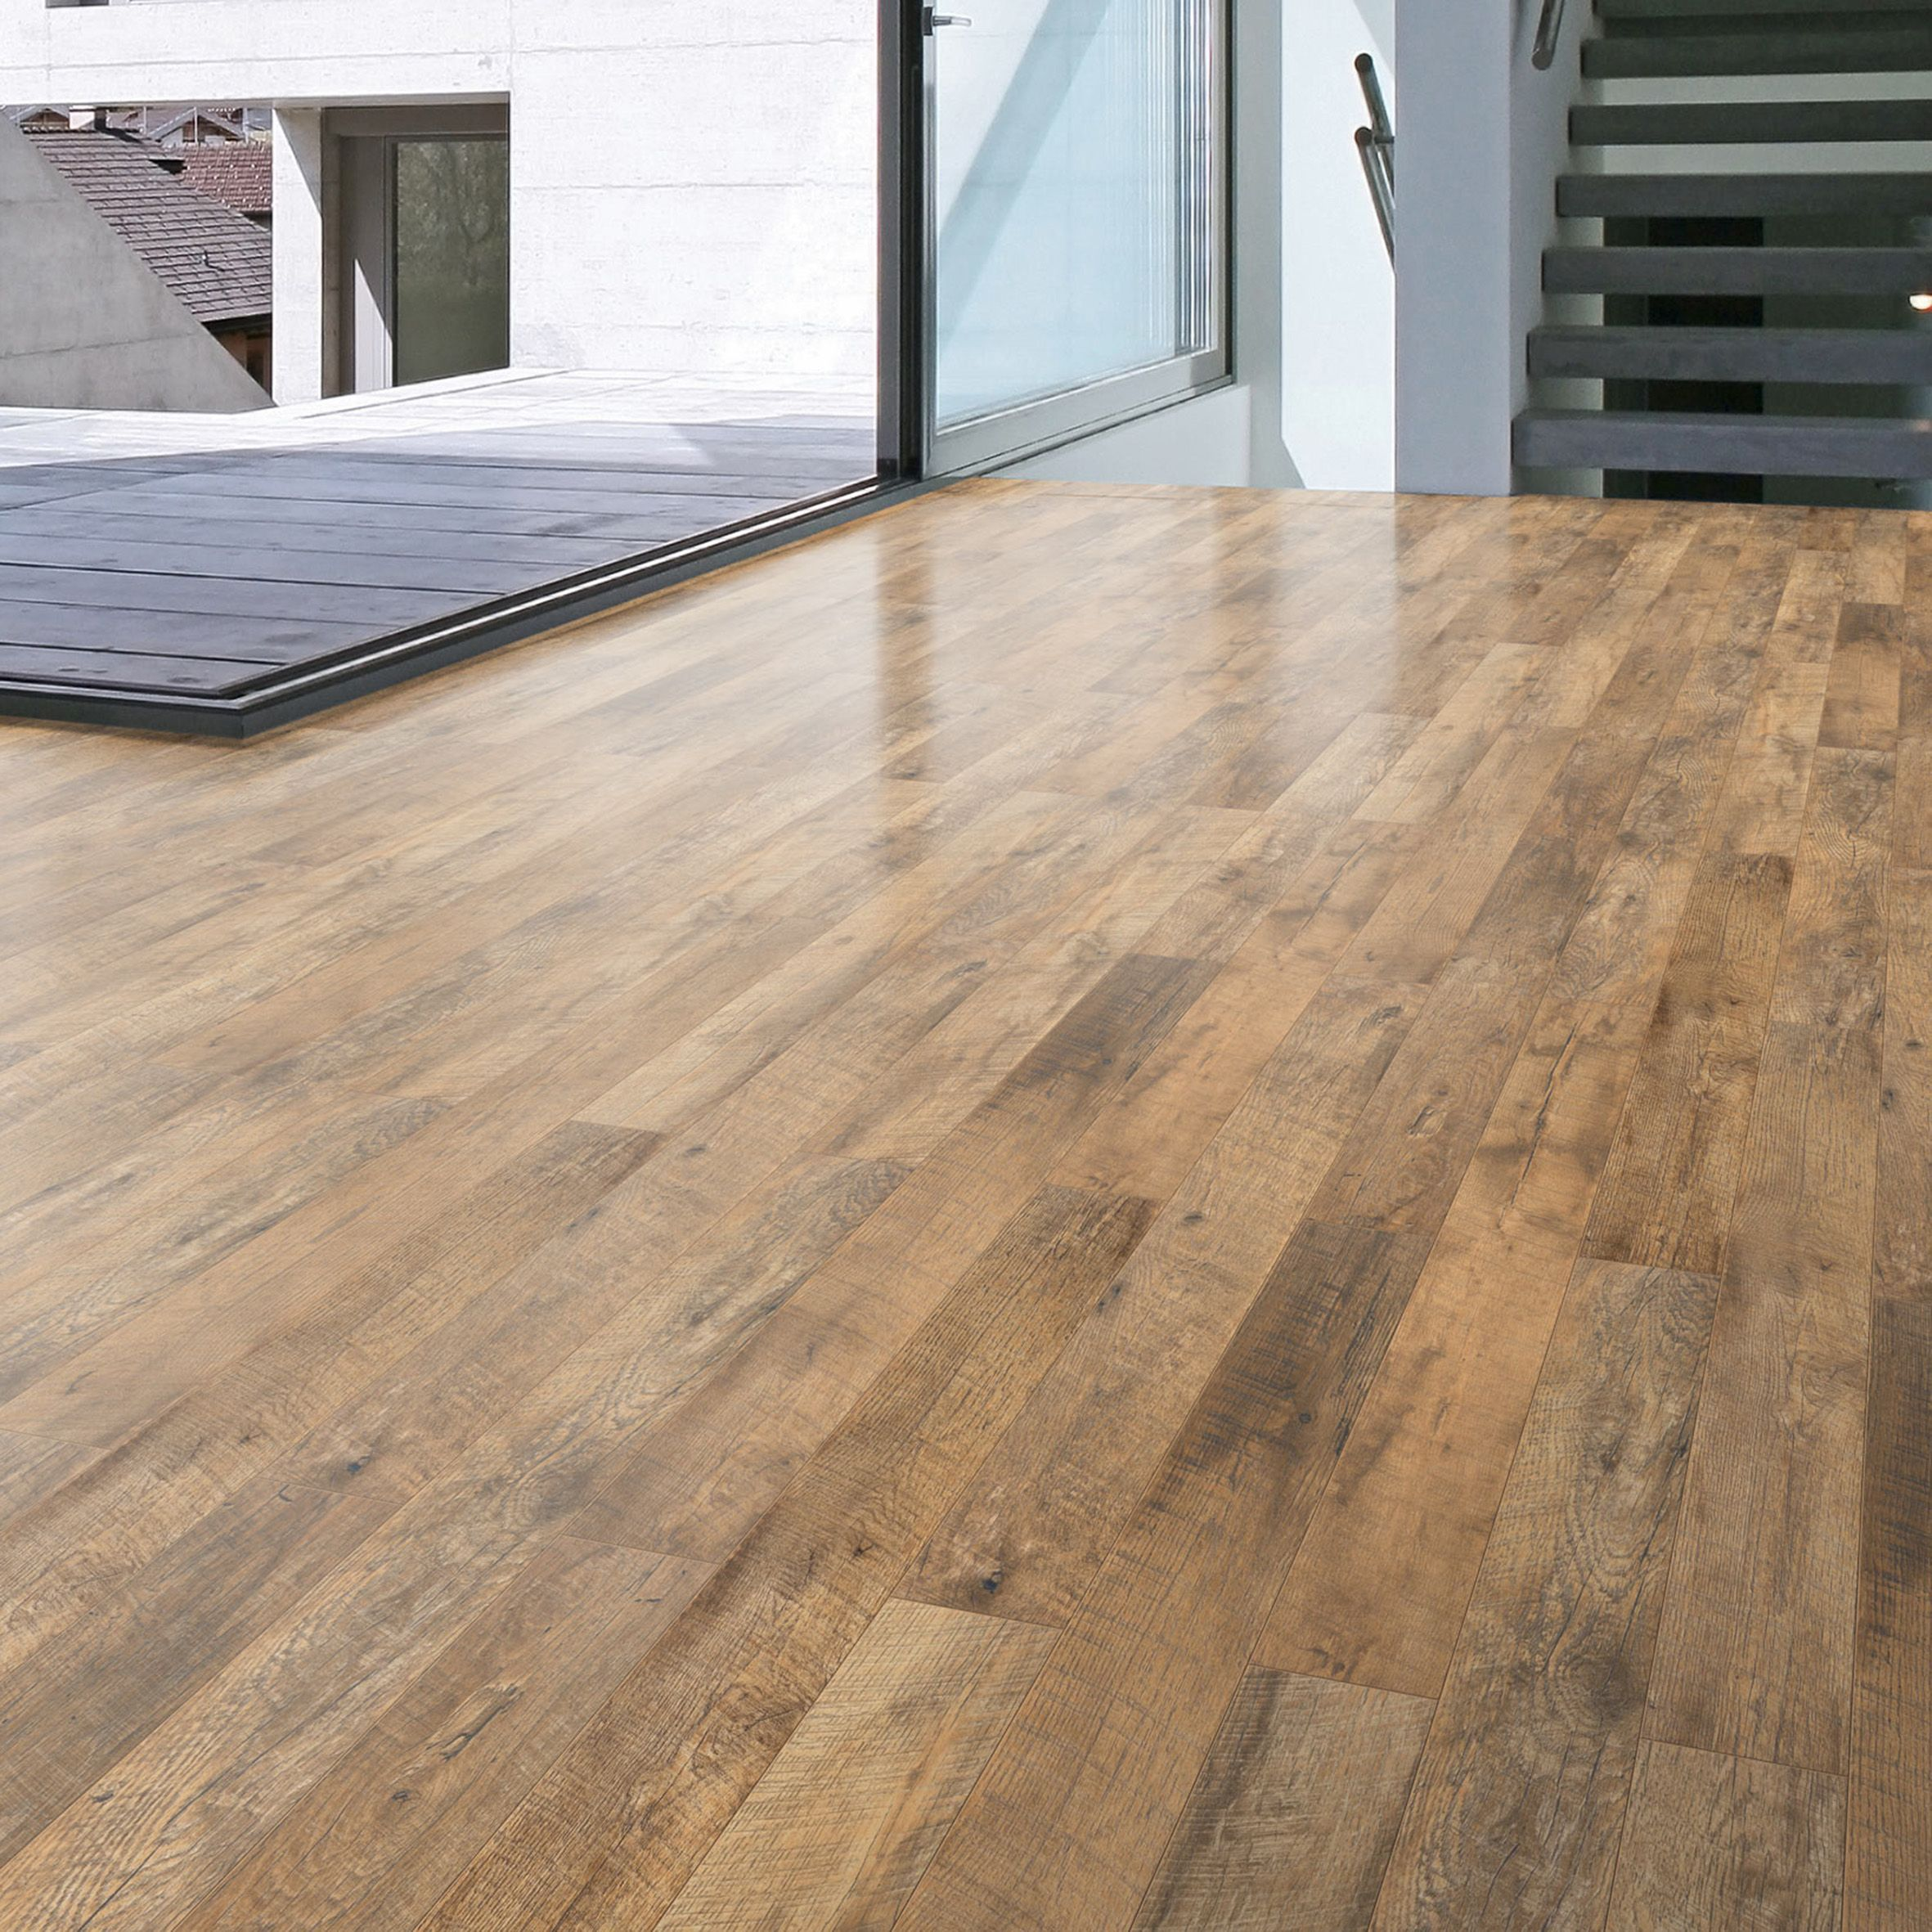 guarcino reclaimed oak effect laminate flooring m pack departments diy at b q. Black Bedroom Furniture Sets. Home Design Ideas